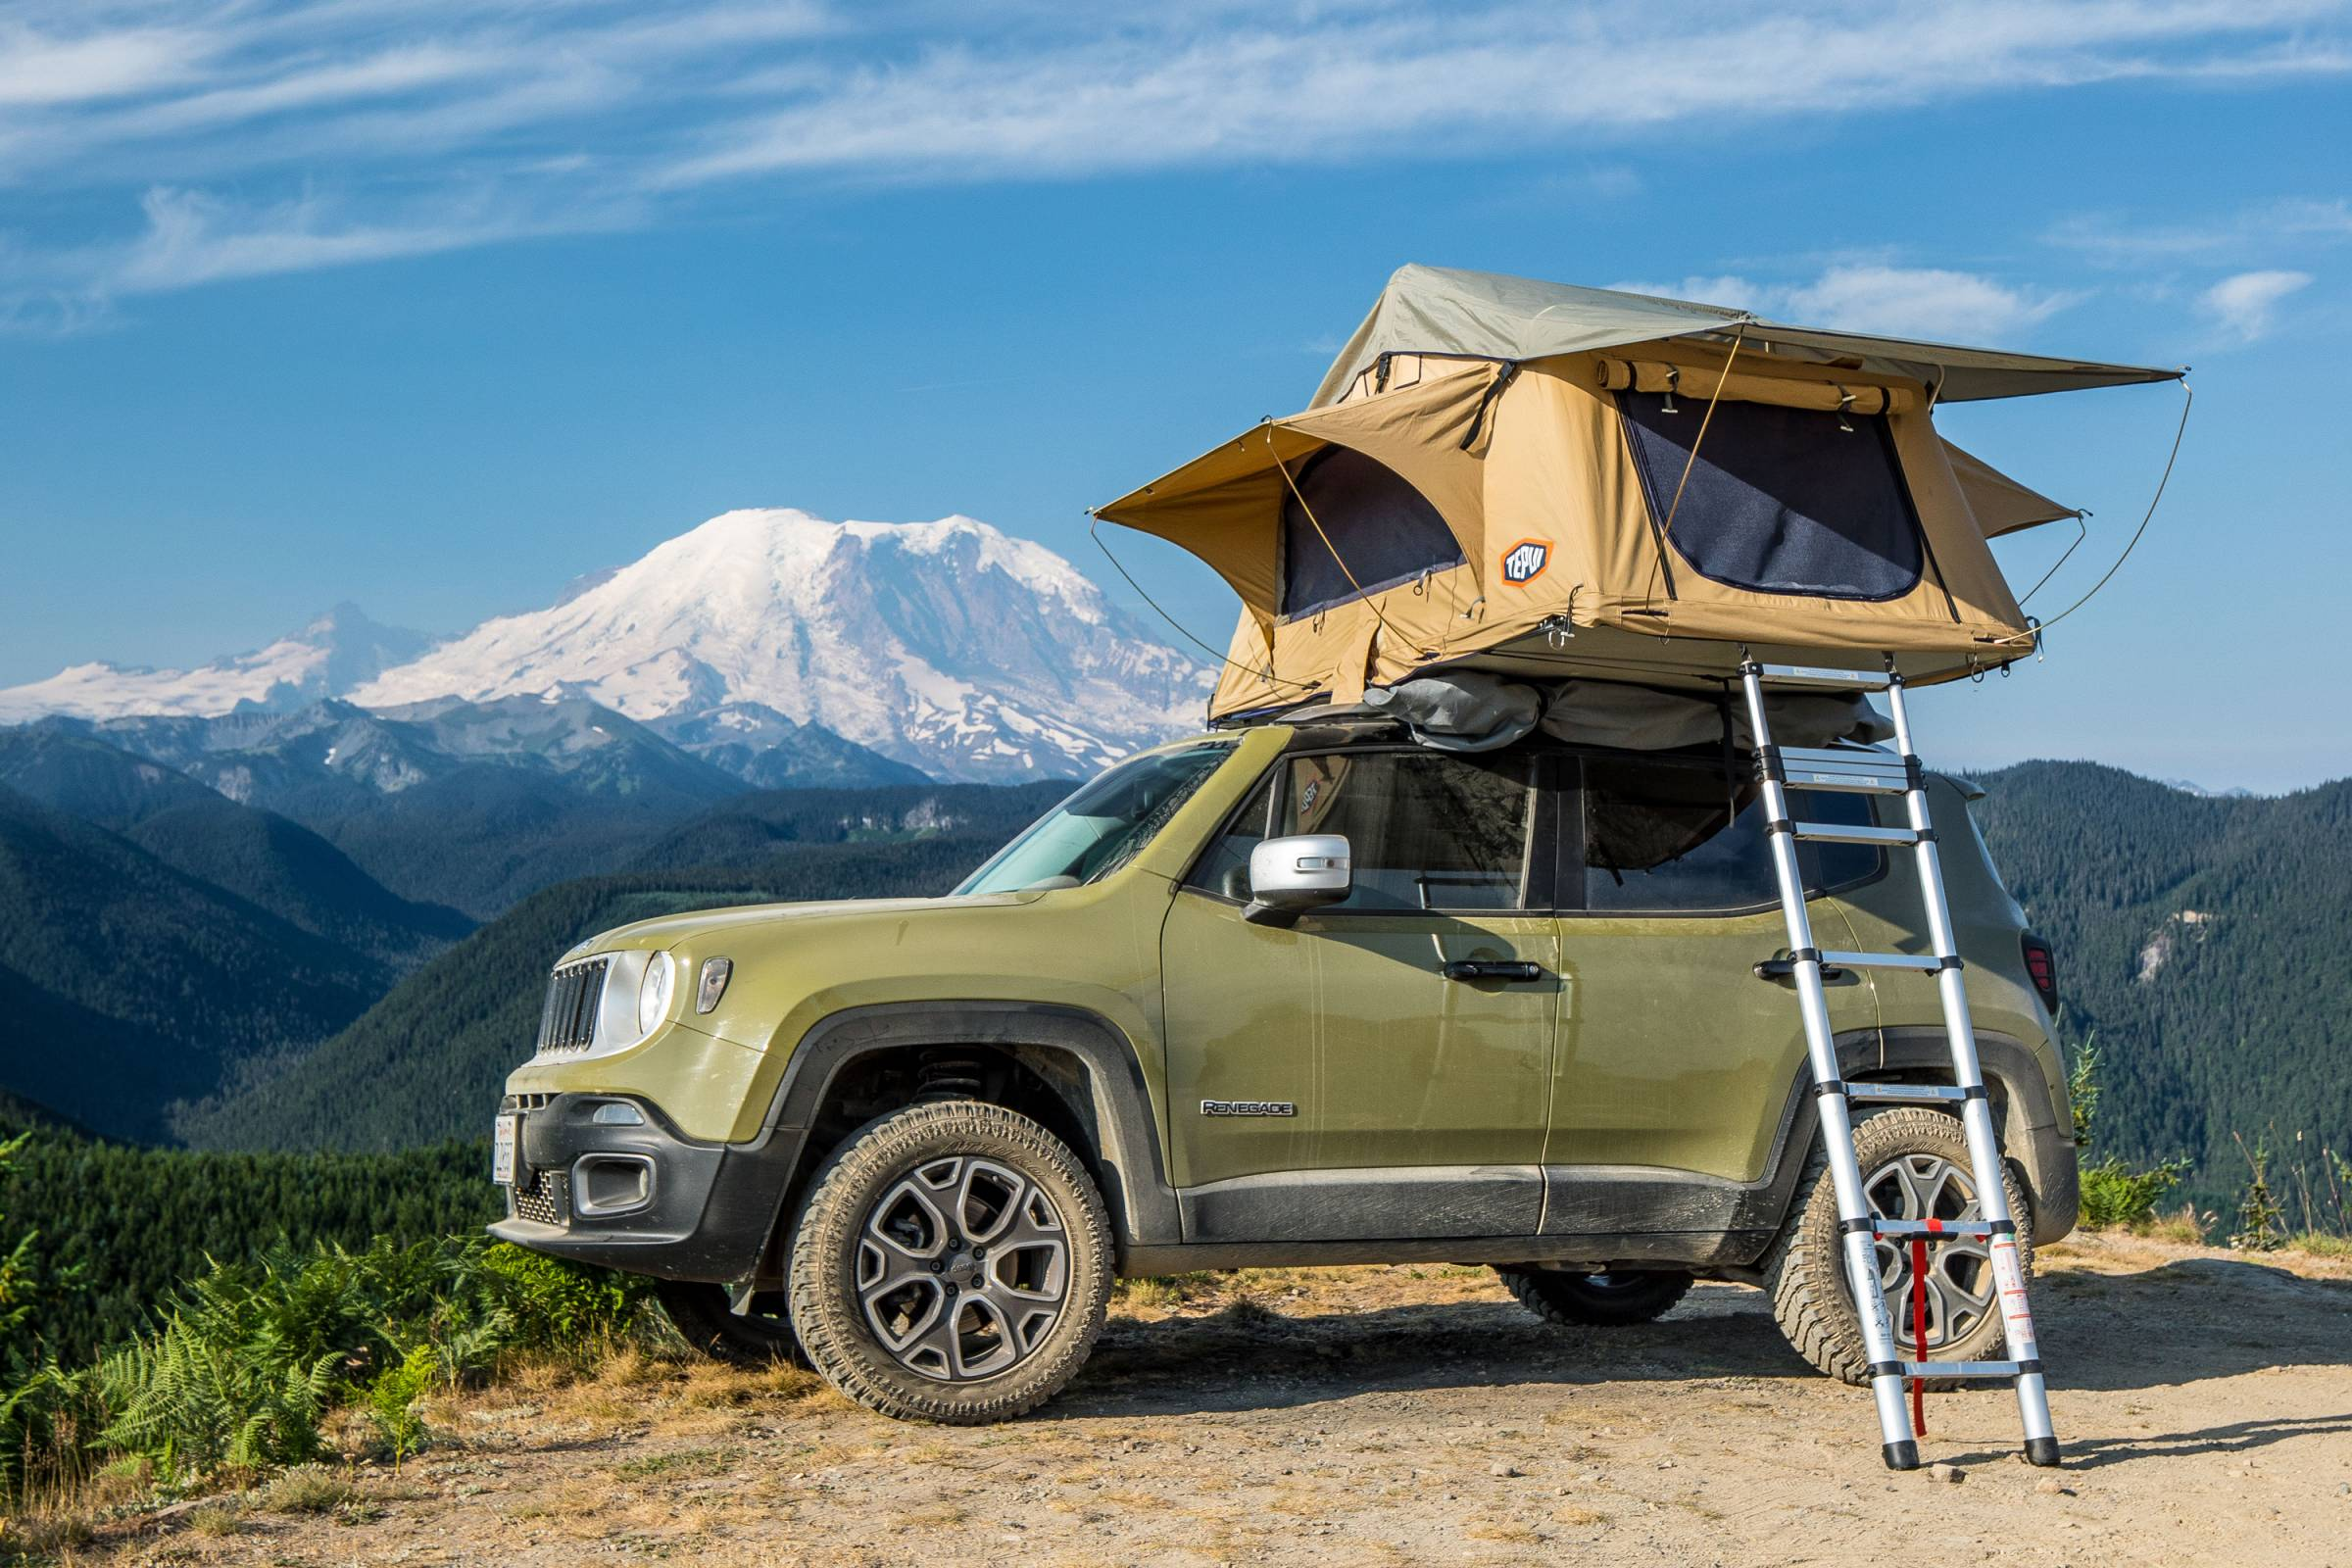 Car Rack Giant Thule Buys Tepui, Bets Big on Rooftop Tents